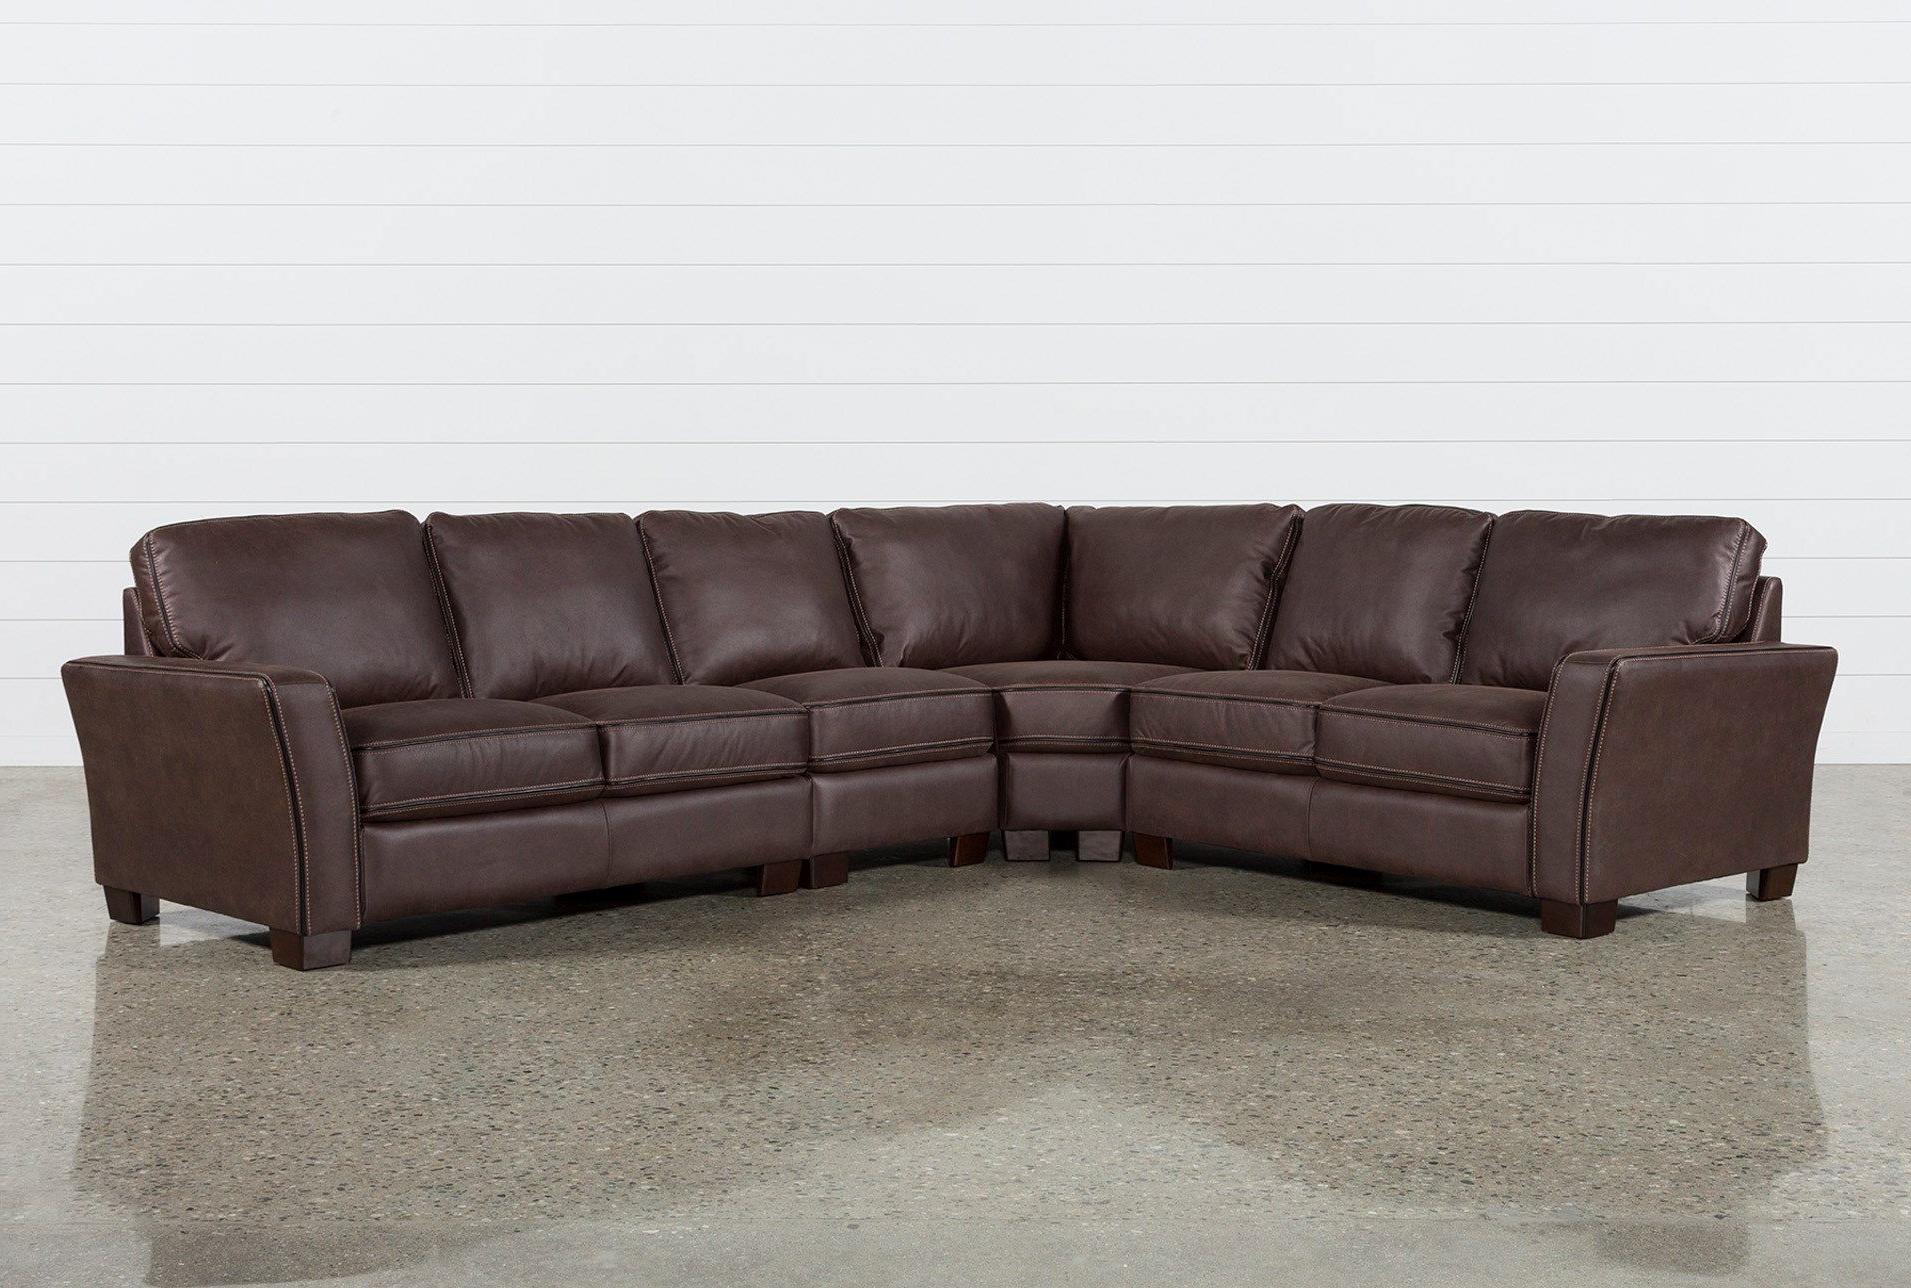 Preferred Burton Leather 3 Piece Sectionals Intended For Blaine 4 Piece Sectional In  (View 15 of 20)